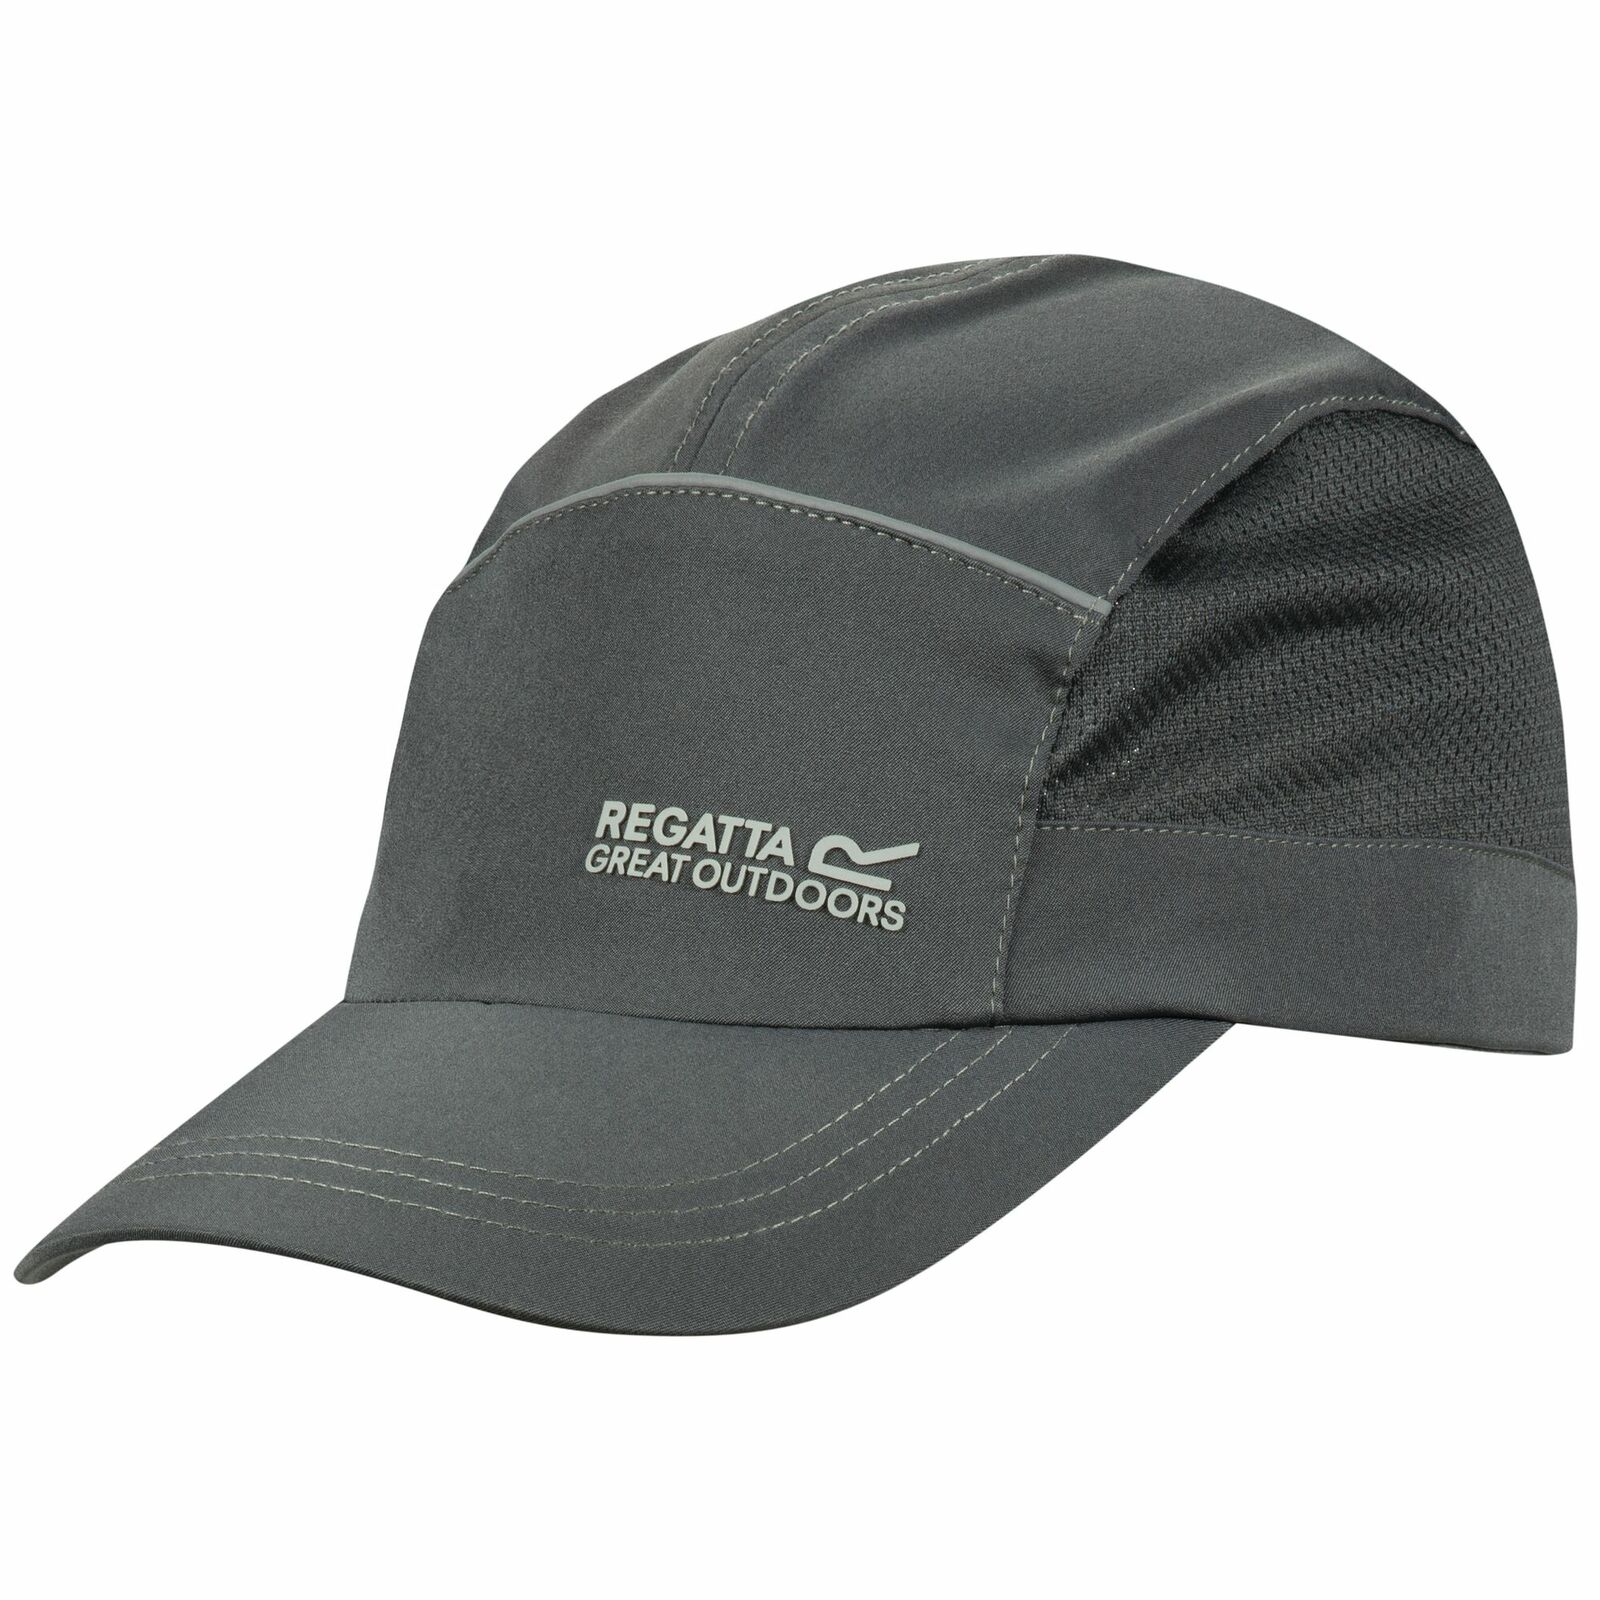 RG1976 Regatta Great Outdoors Unisex Extended Sports Cap